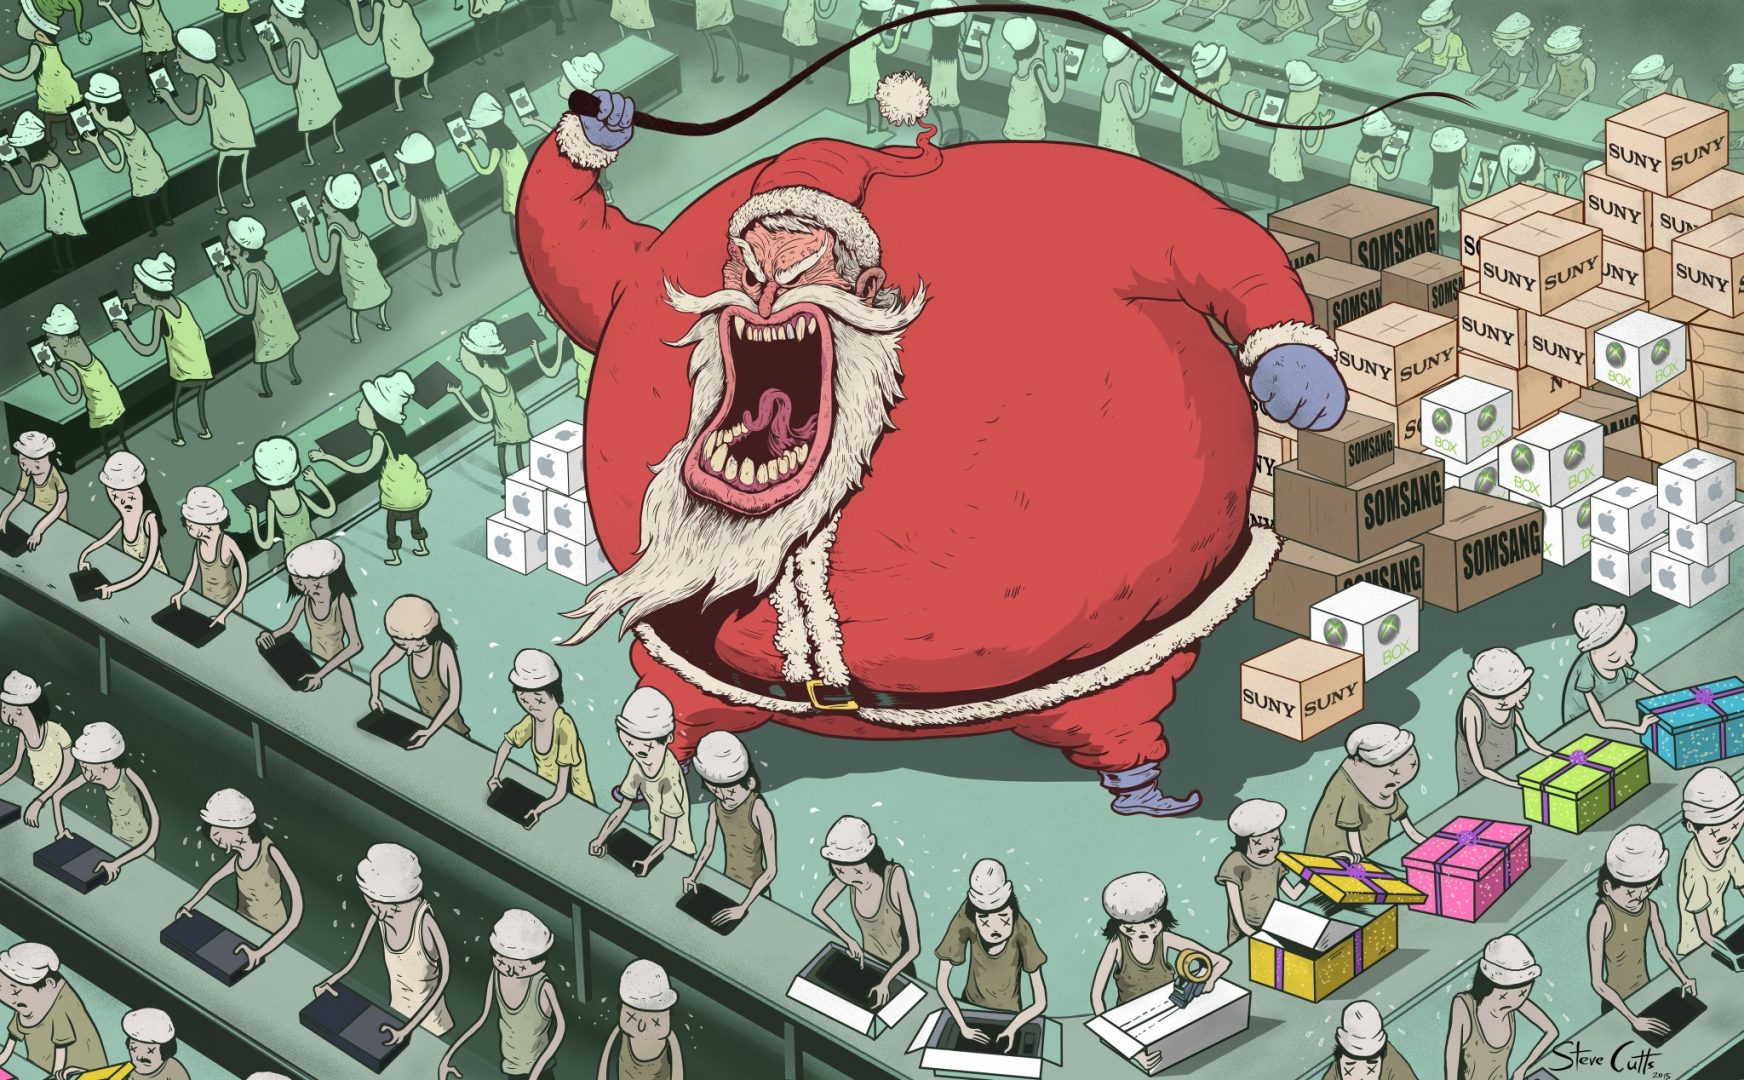 Steve Cutts' Santa illustration